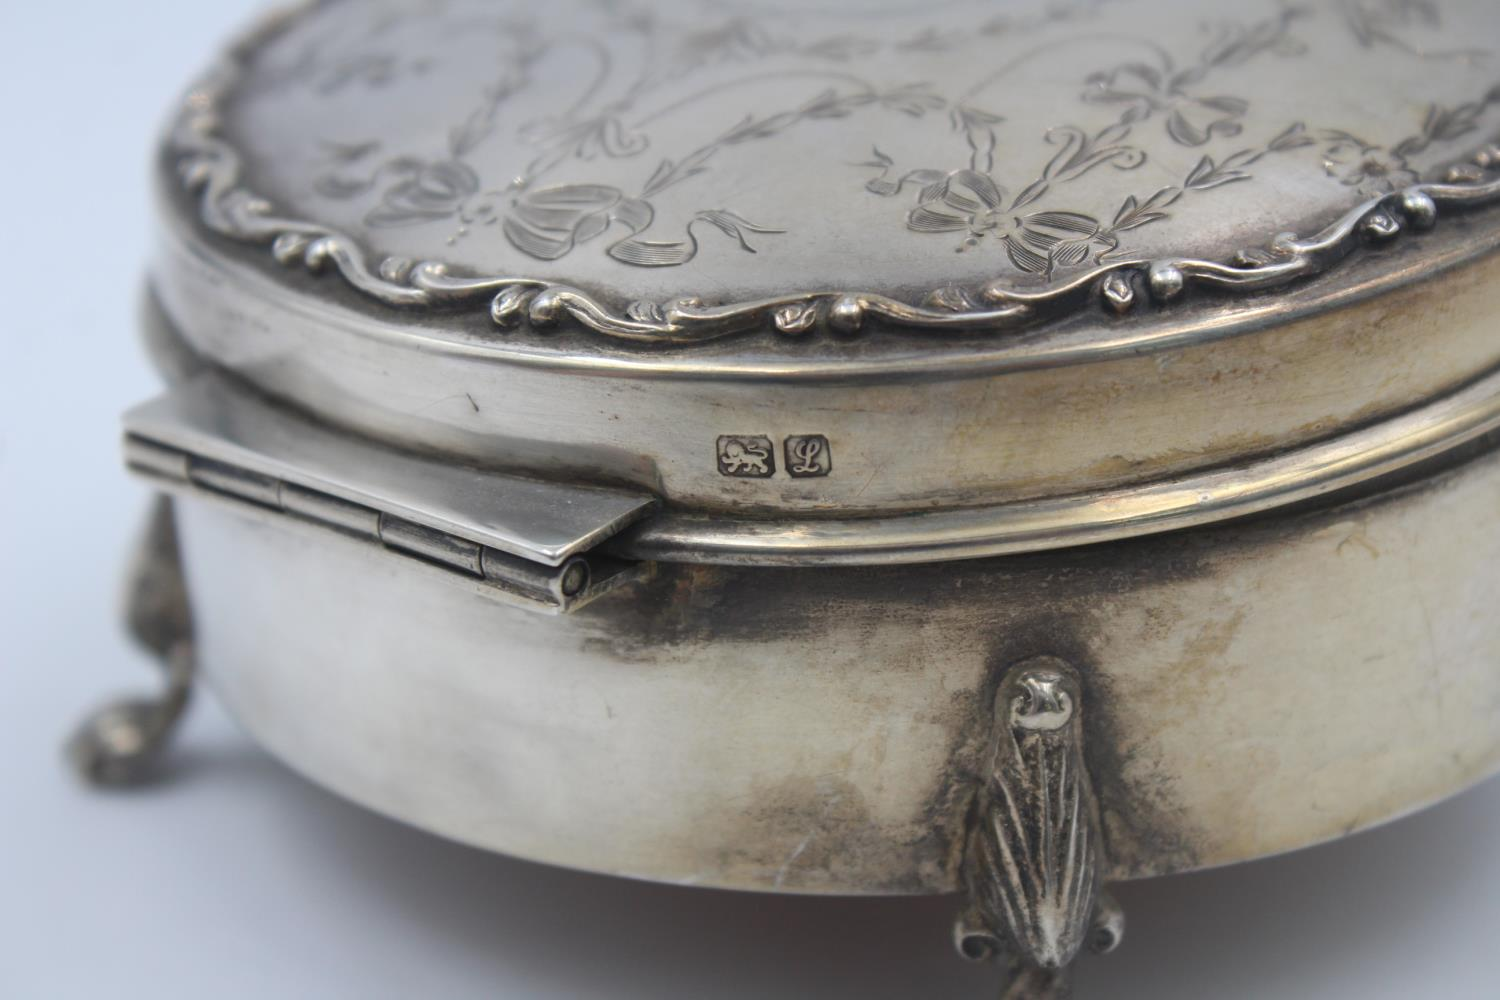 Antique Hallmarked 1912 Chester STERLING SILVER Jewellery / Trinket Box (135g) - Image 4 of 4